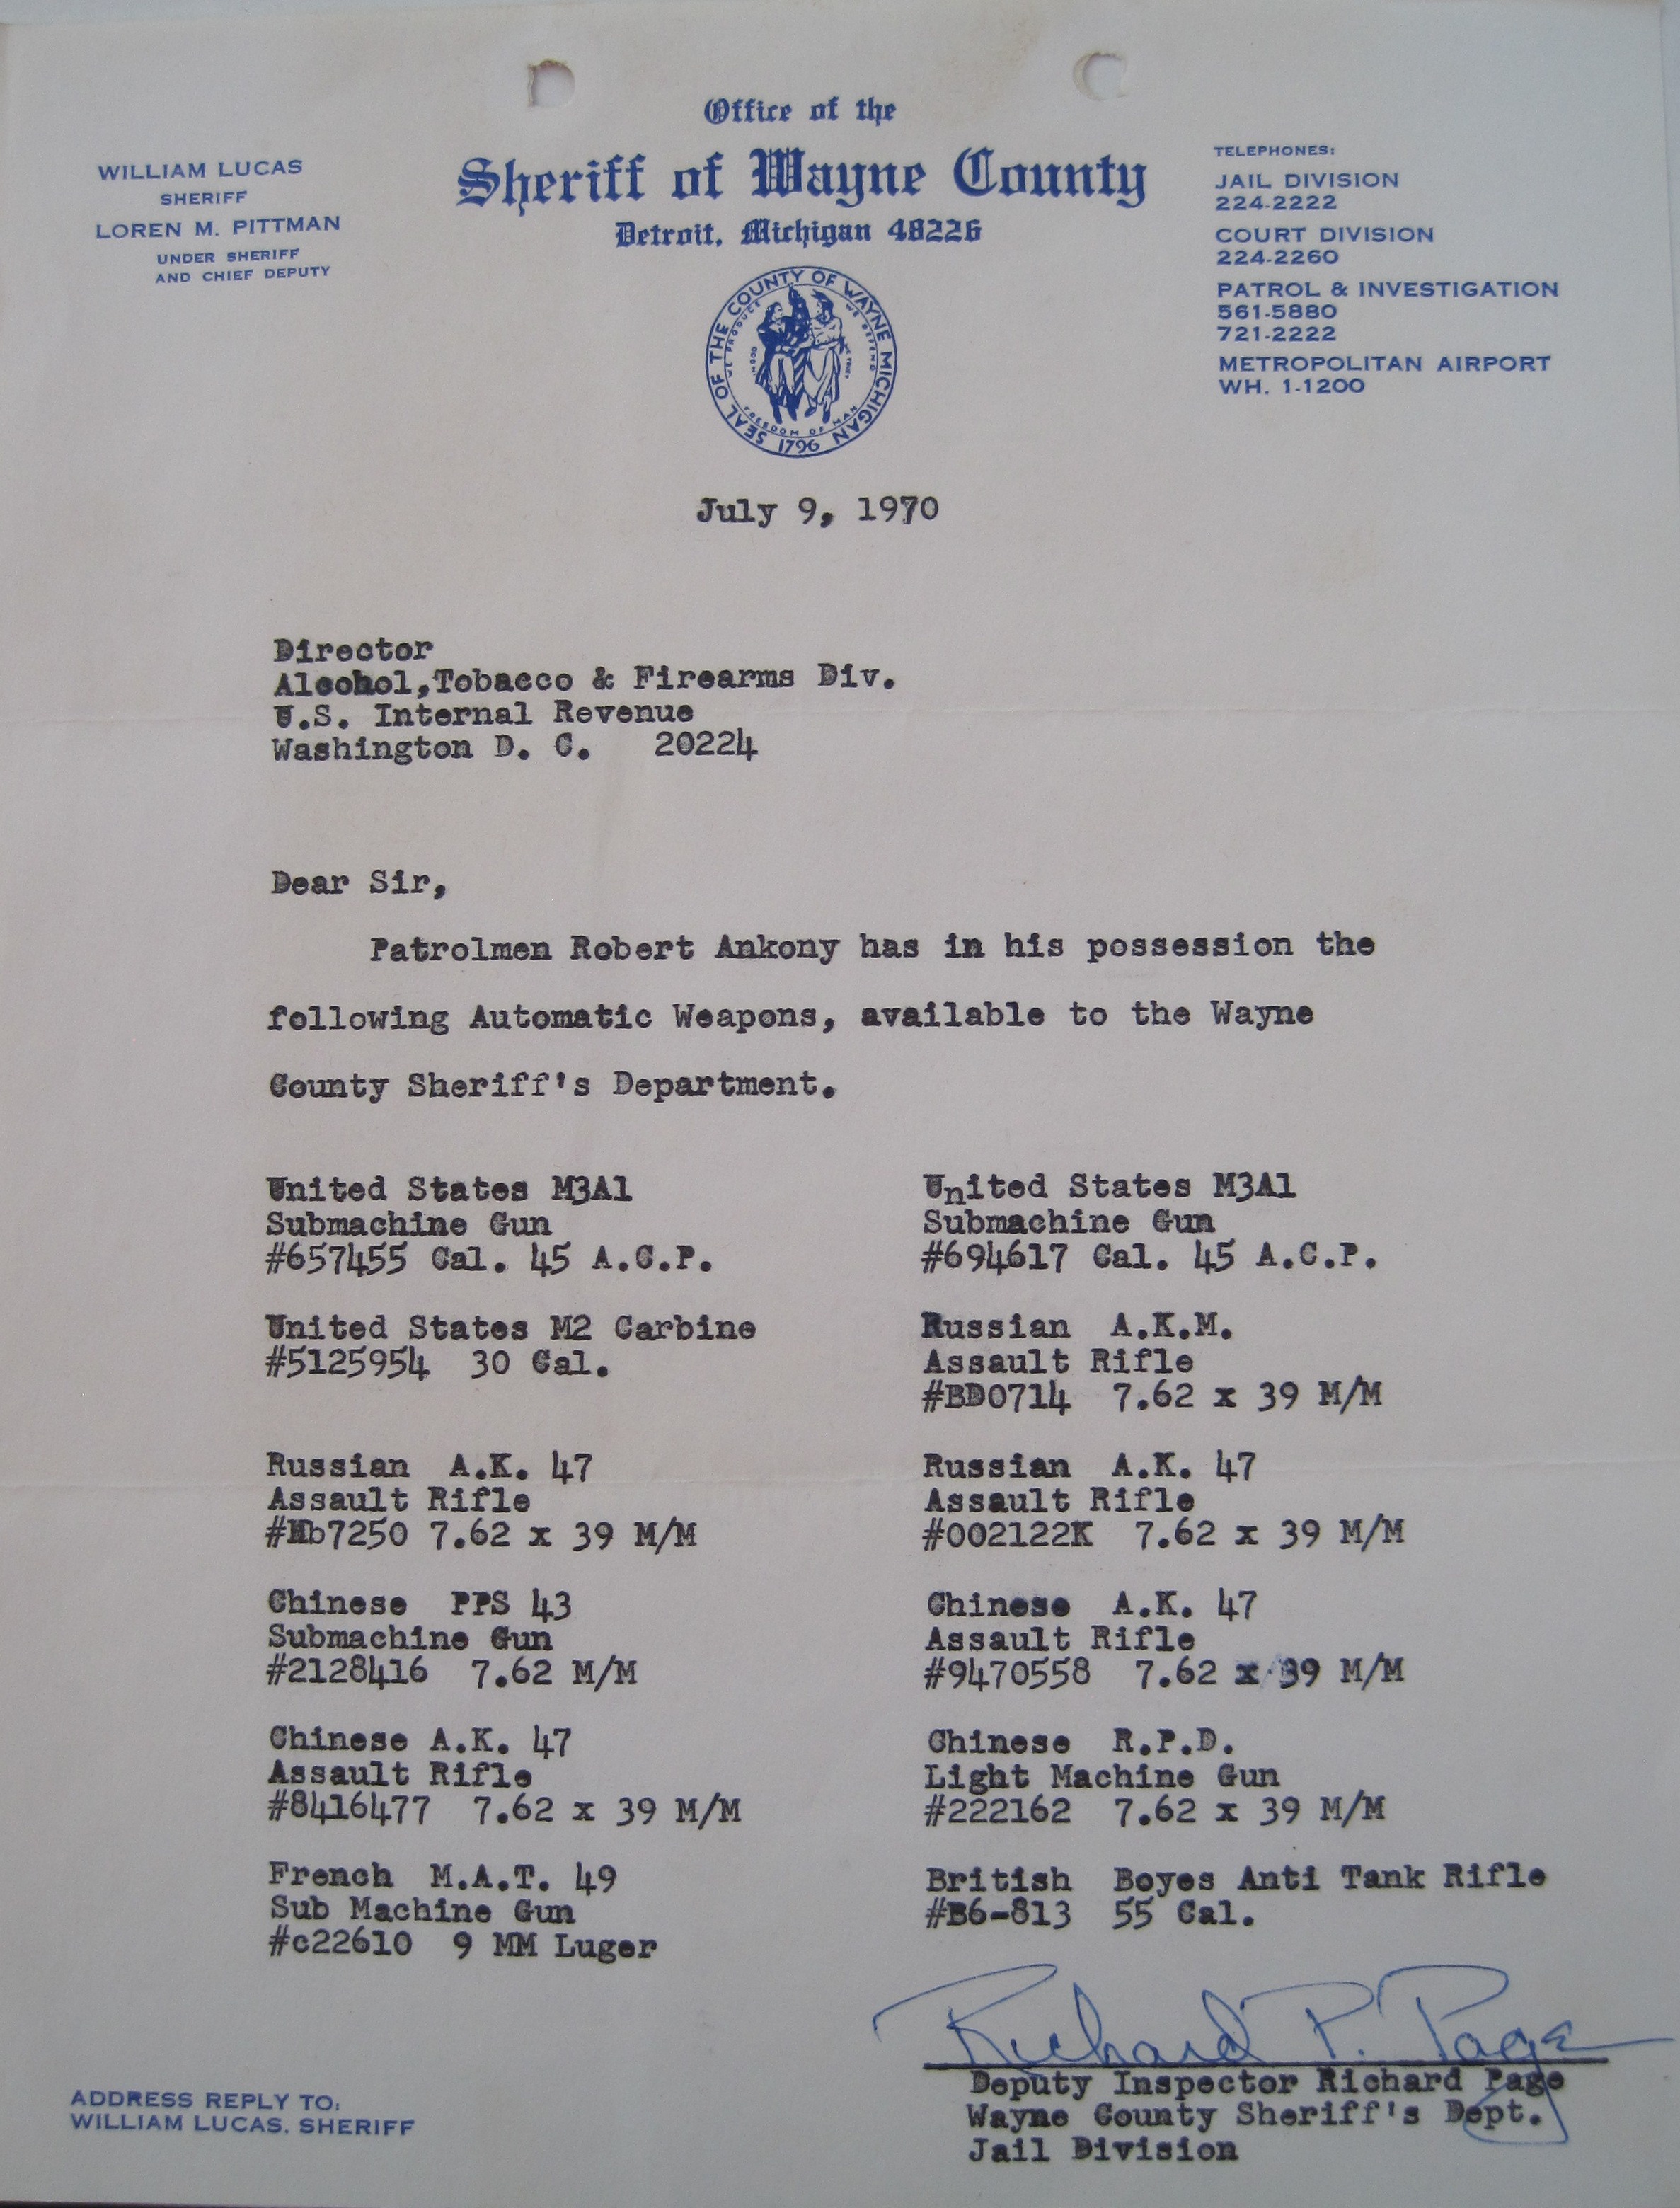 Thursday, July 9, 1970, sheriff's department letter citing weapons